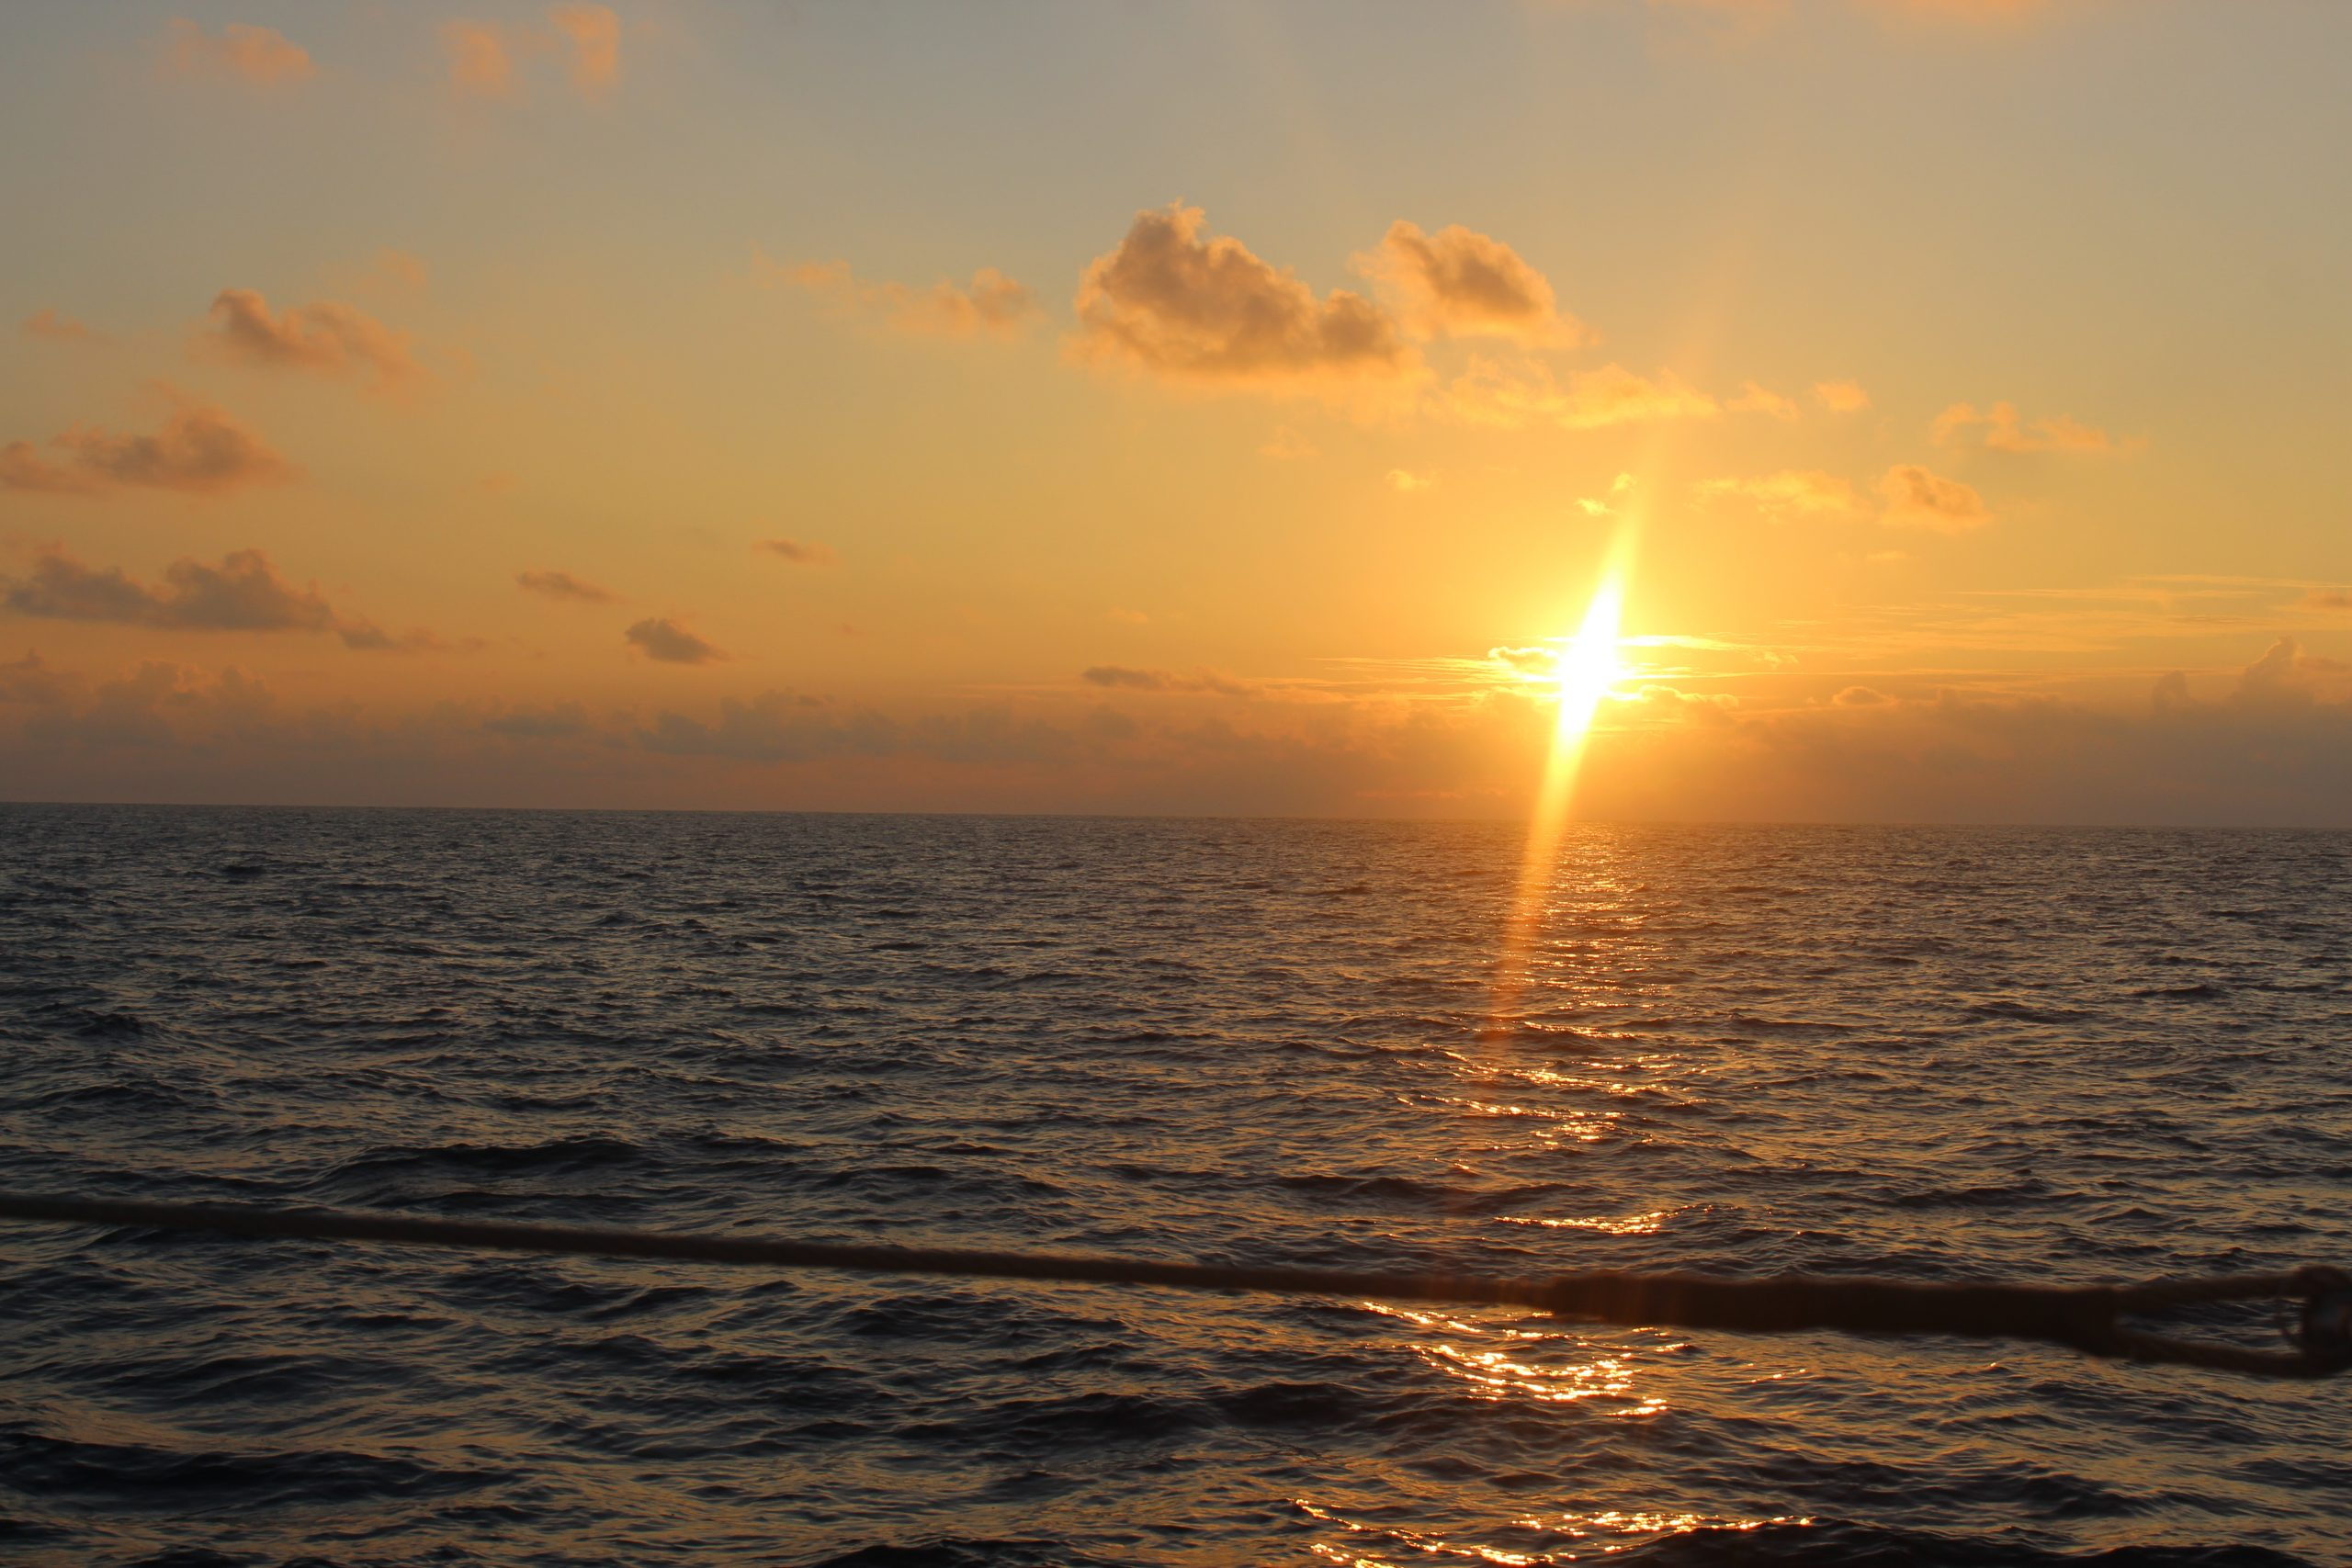 image shows a sunrise over the ocean